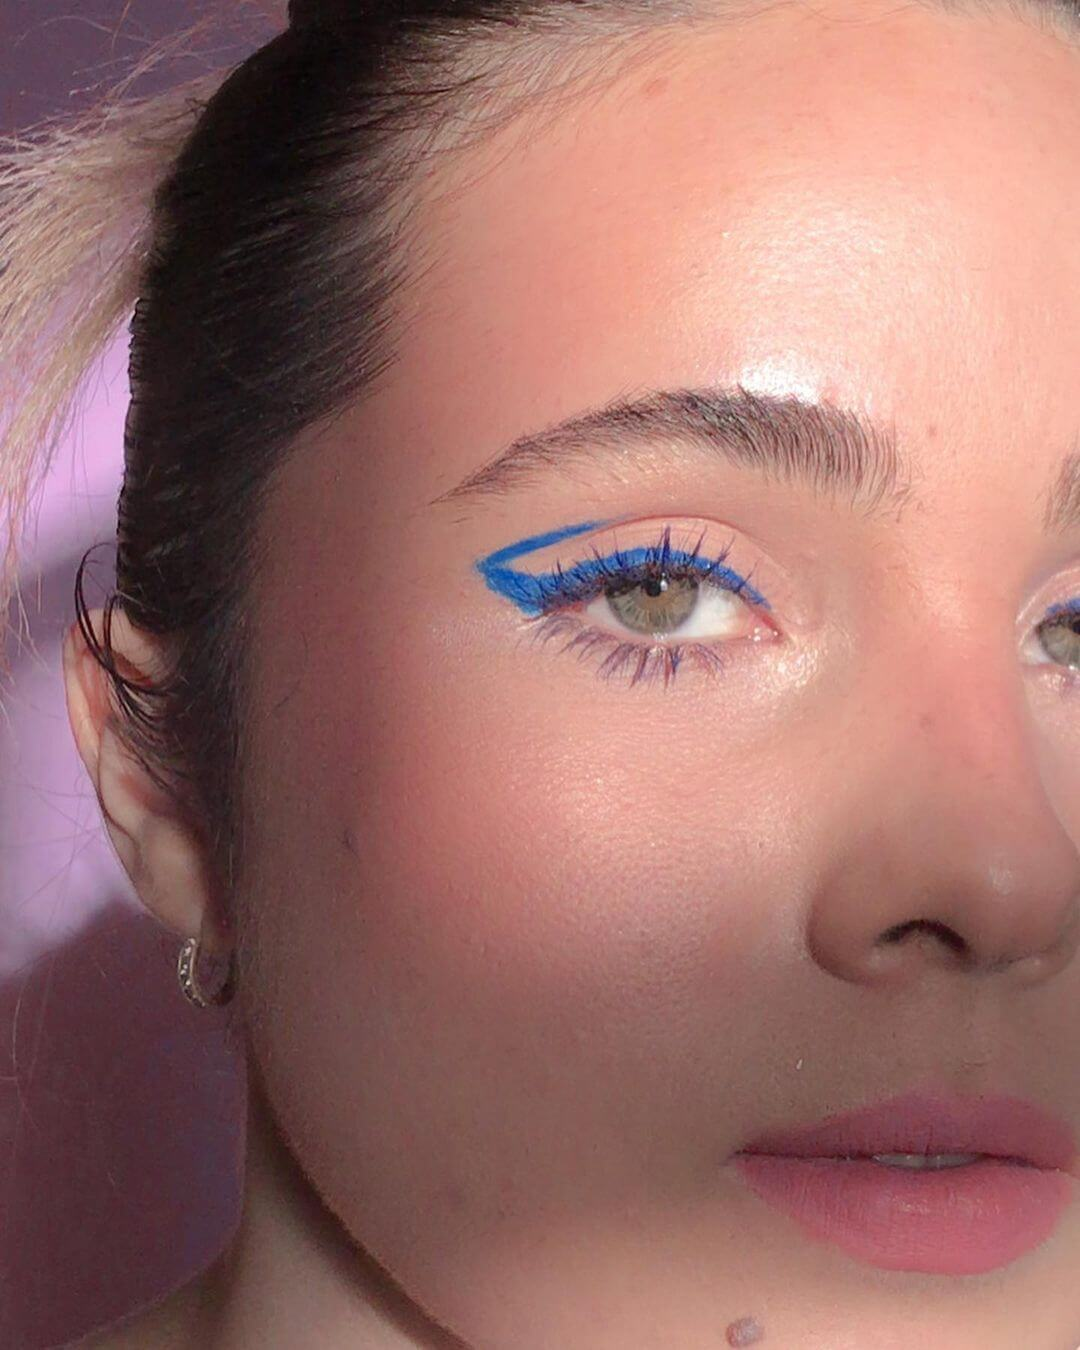 8. Do you like artistic makeup look at this option